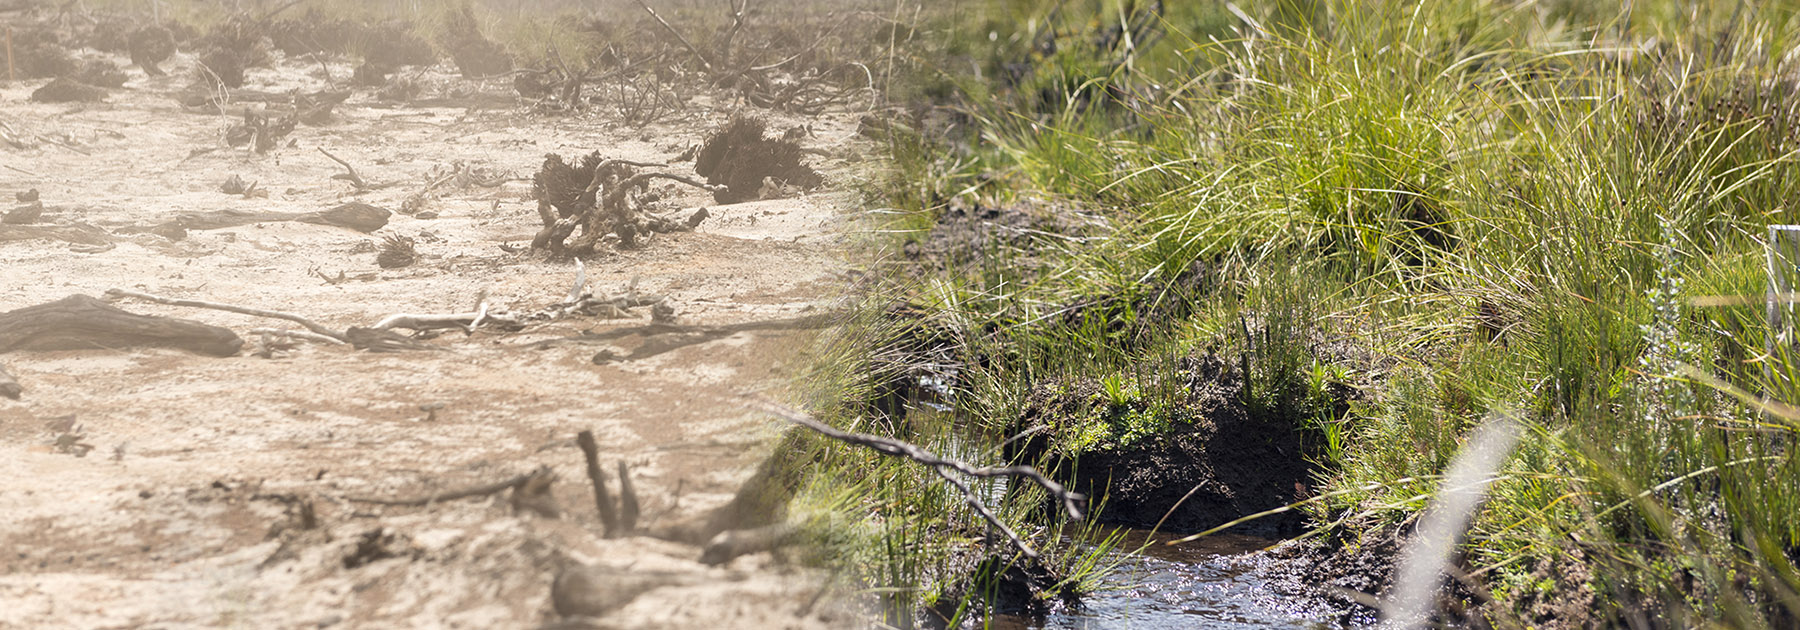 Save wetlands from coal mining